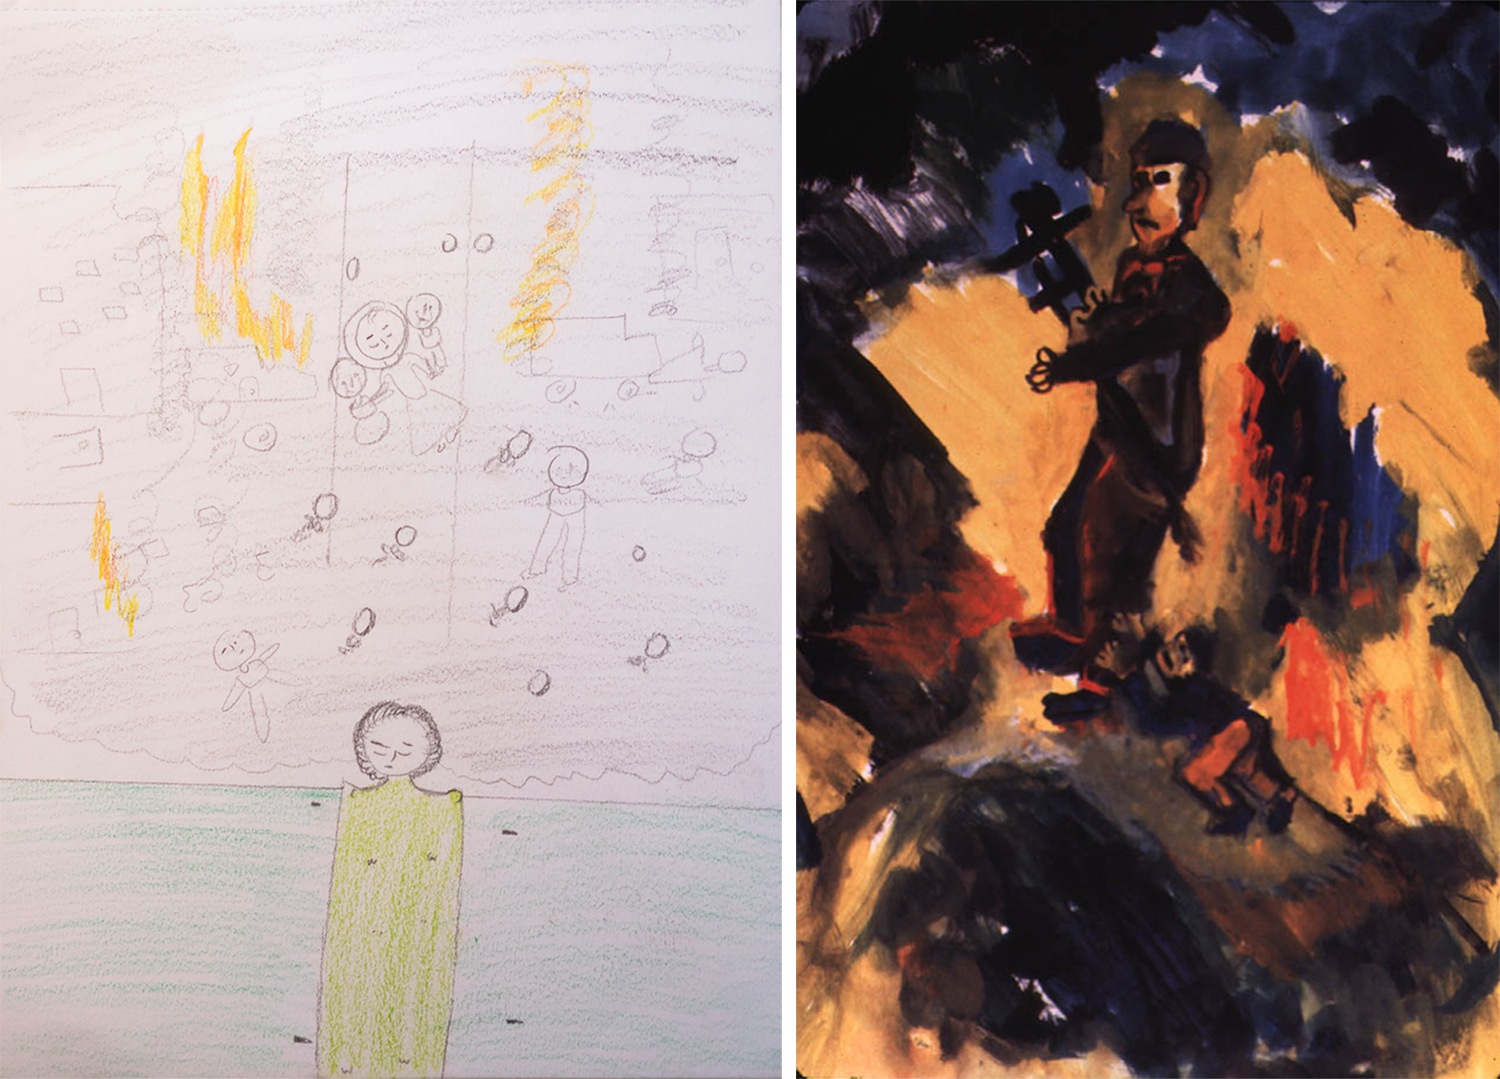 Left: Hiba (not her real name), a 16 year old Syrian girl, escaped to Jordan with her three brothers after a bombing took the lives of her parents and sister. After spending three months at IRC's child protection reception area, she is reunified with her grandparents in Amman. She draws to express herself, and says of this painting,  a couple of days ago, my brother told me that he dreamt of the bombing. So I drew him, how he's sleeping and dreaming of the bombing. I showed him the painting and he started laughing at me; he told me that this wasn't his dream. His dream was more intense.  Right: A child's drawing from Cambodia in 1979, titled:  Daddy Don't Go to War.  In the late 1970s, the IRC provided aid and resettlement to Indochinese refugees, as 2 million people poured out of Vietnam, Laos and Cambodia.